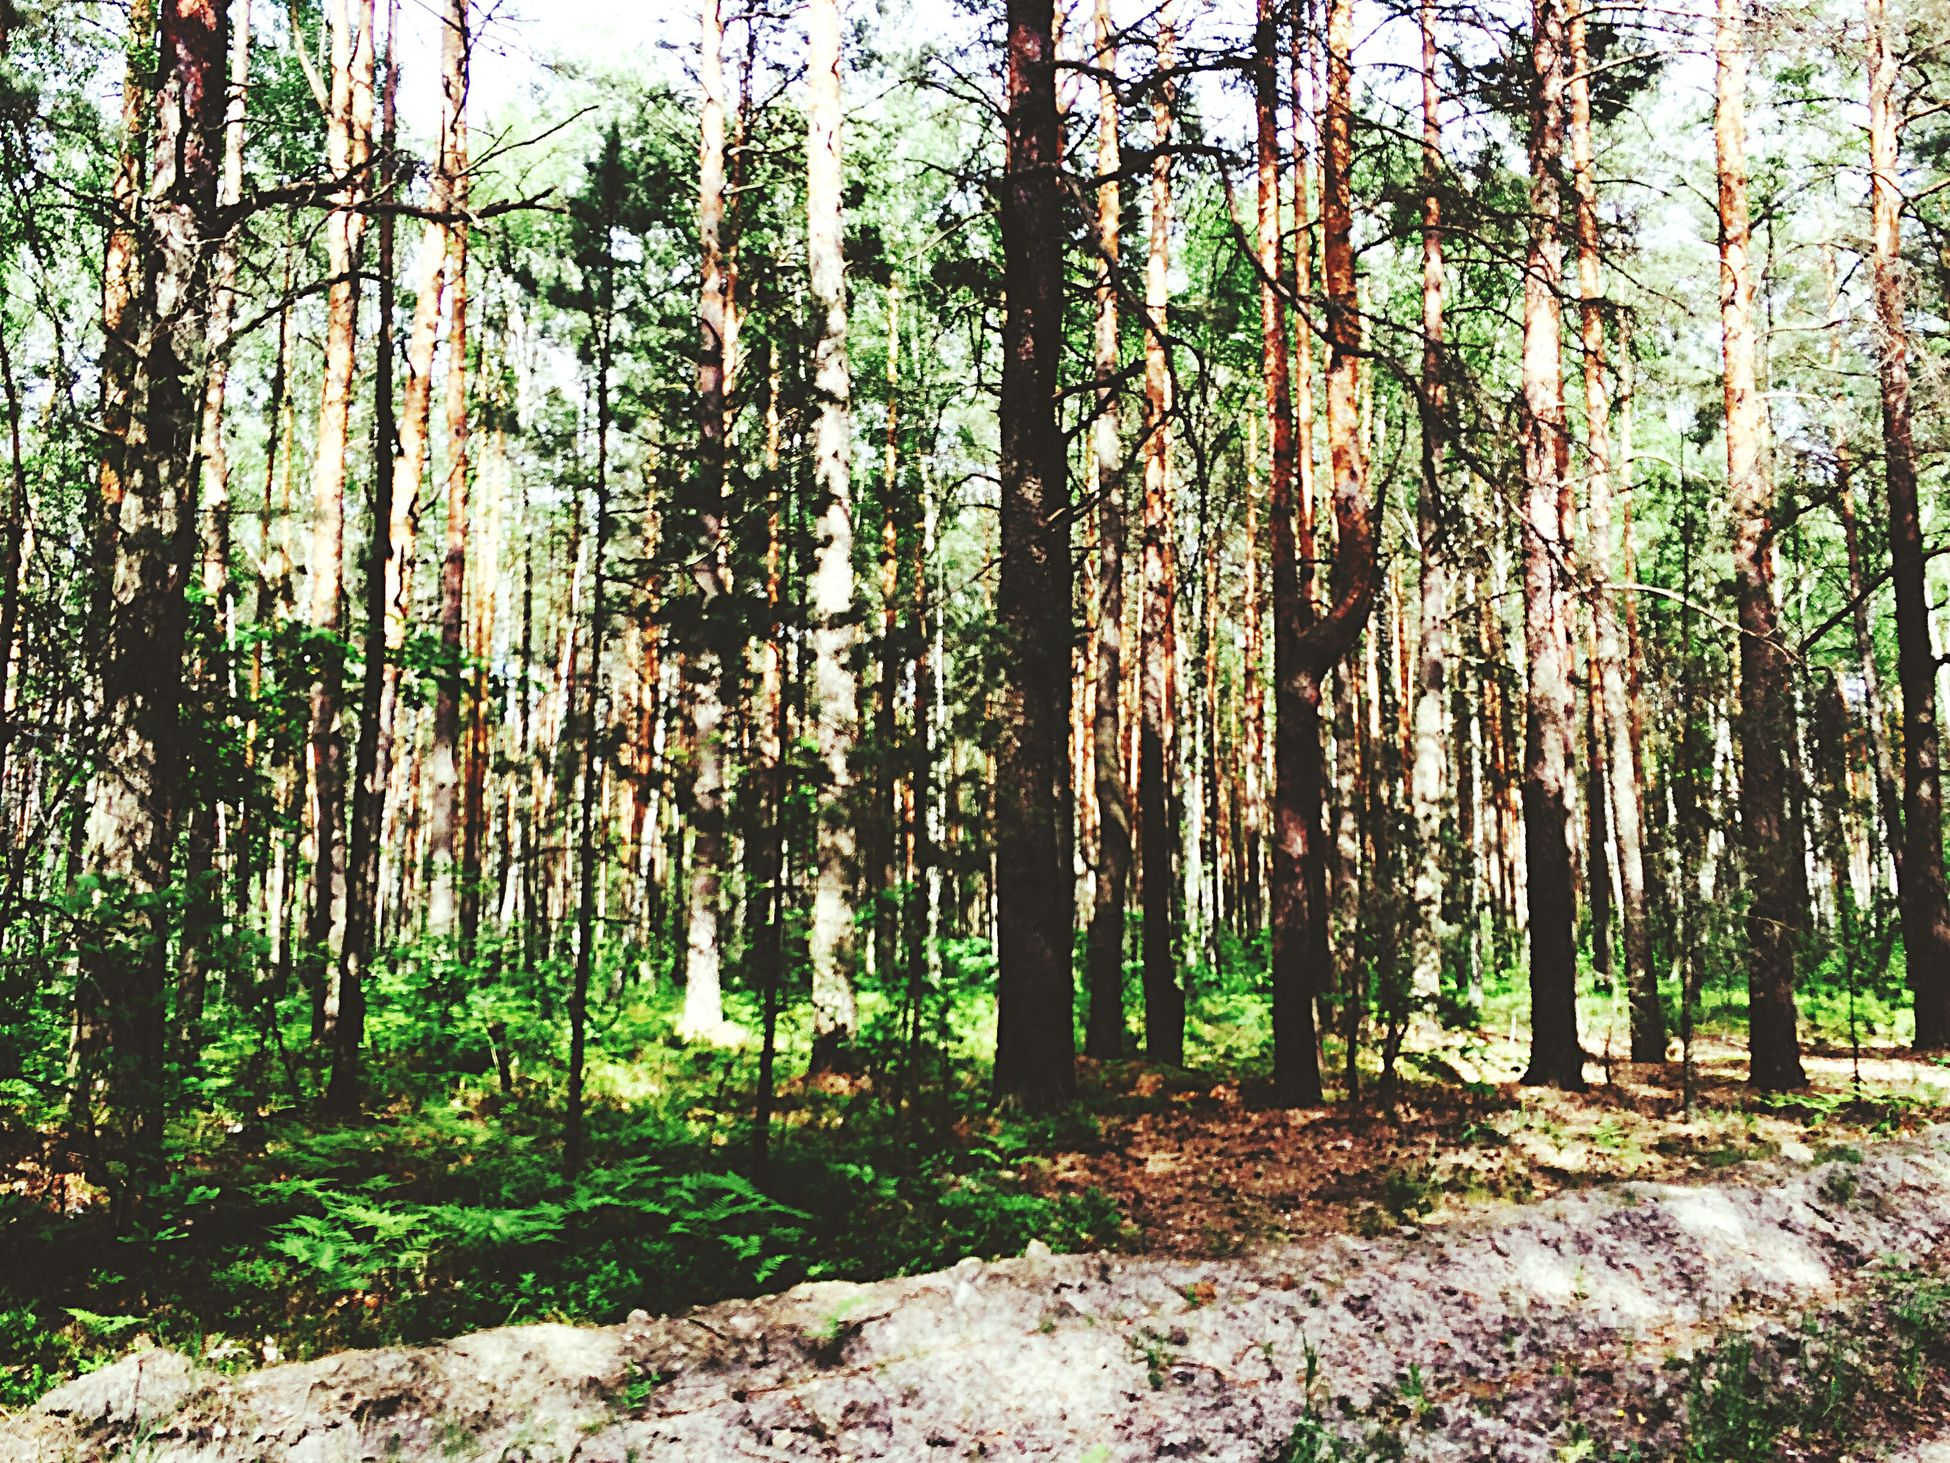 This forest🍃